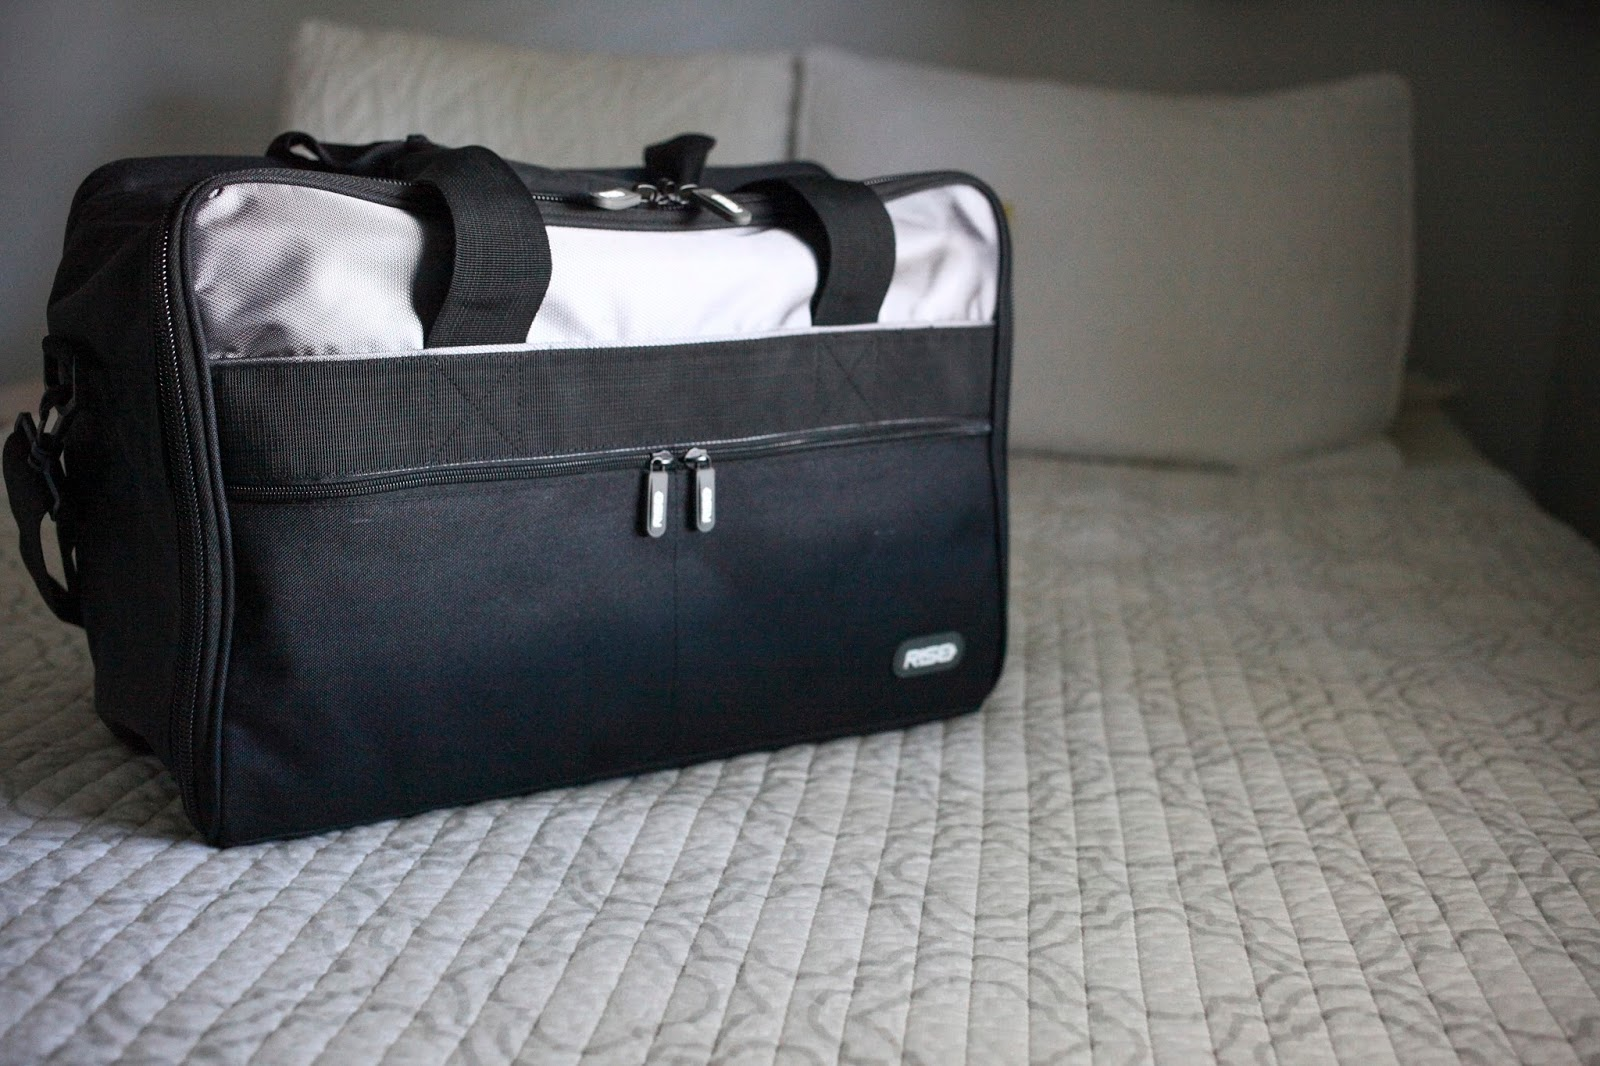 Jumper bag in grey by RISE Gear